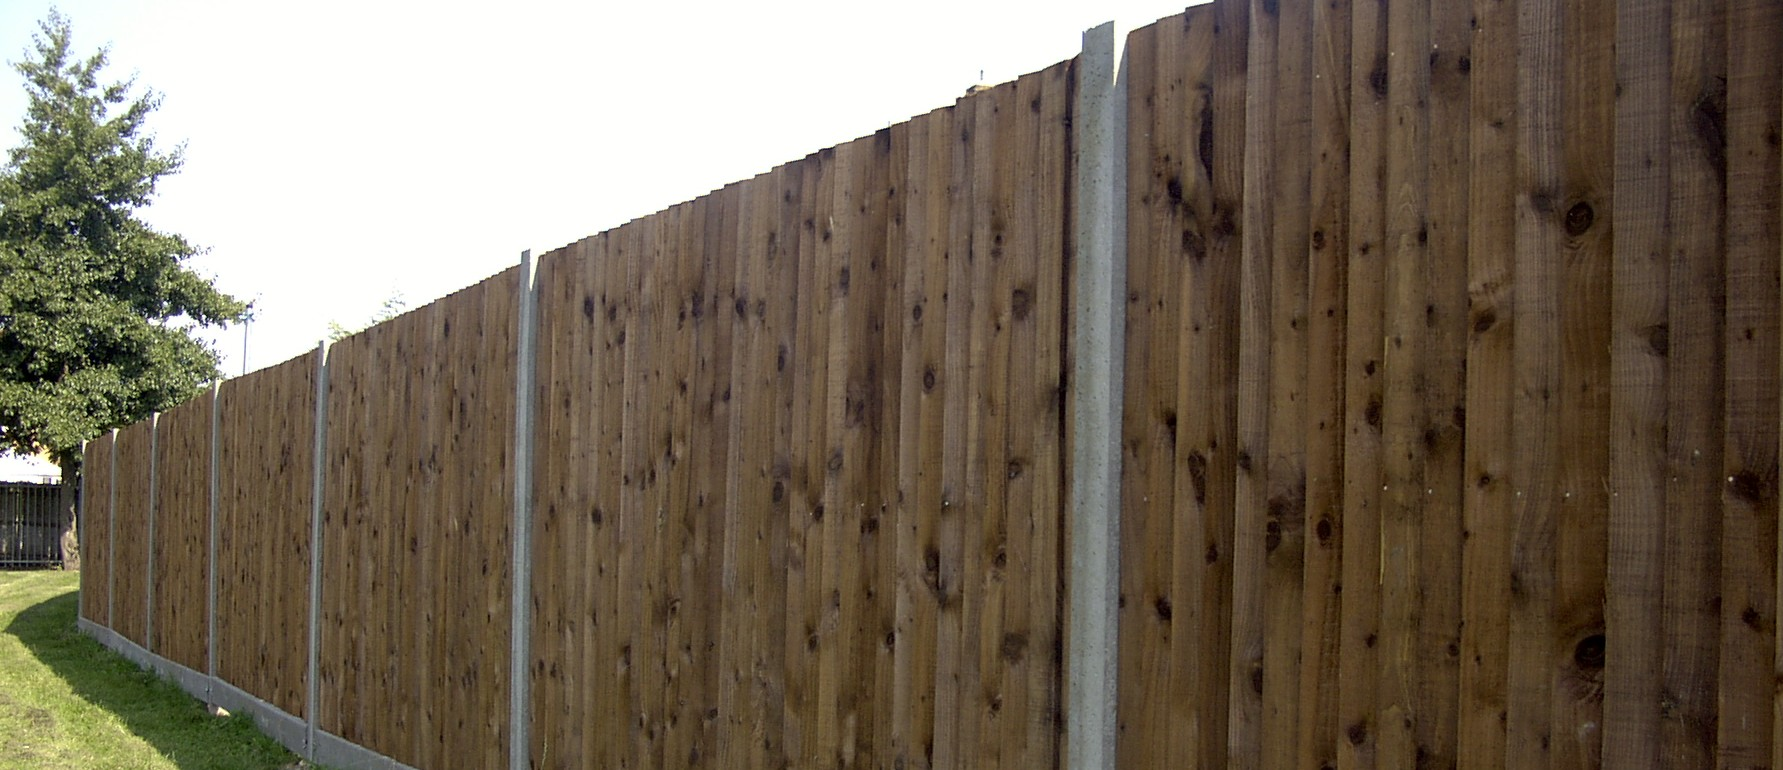 Domestic fencing in dorset, garden fencing